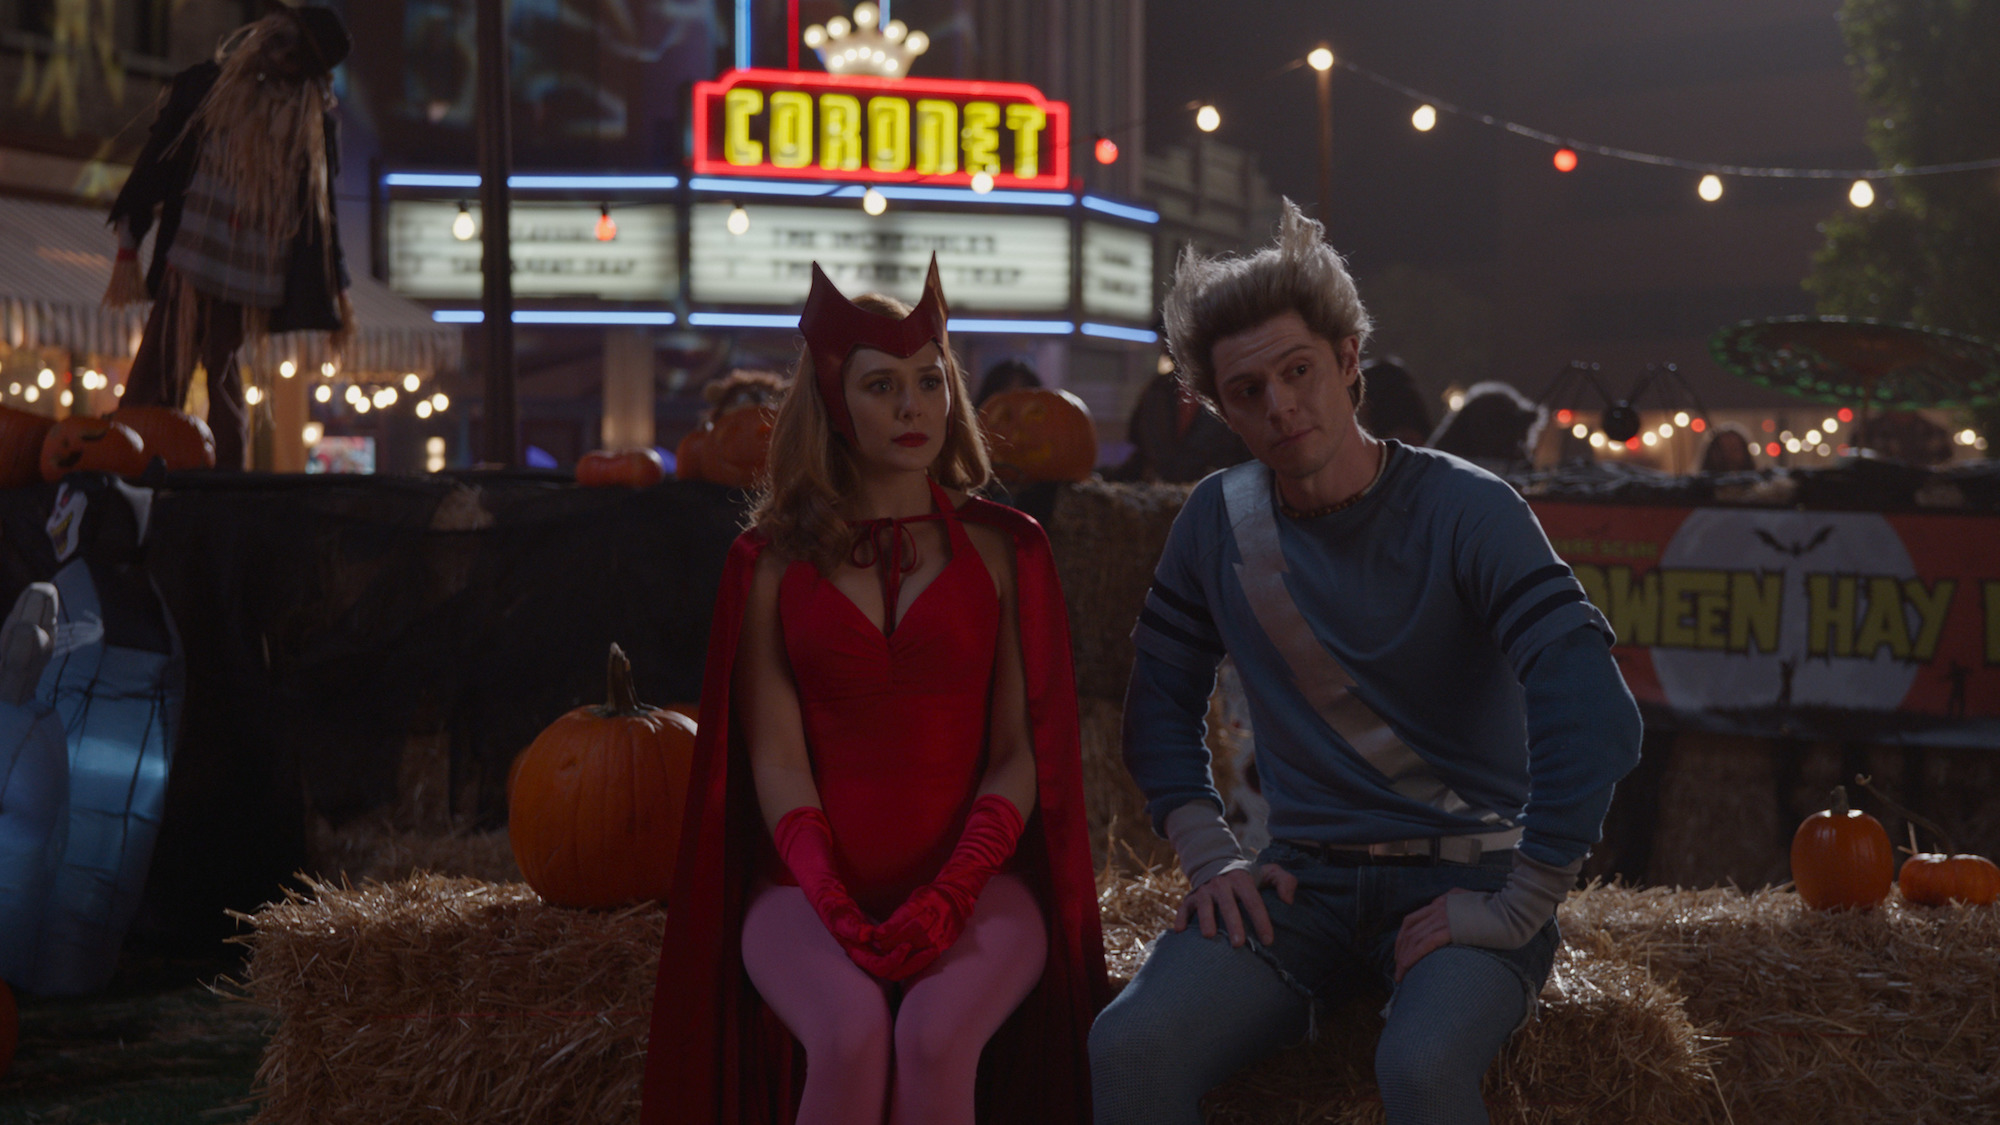 Elizabeth Olsen as Wanda Maximoff and Evan Peters as Pietro Maximoff (maybe) in the Halloween episode of 'WandaVision'